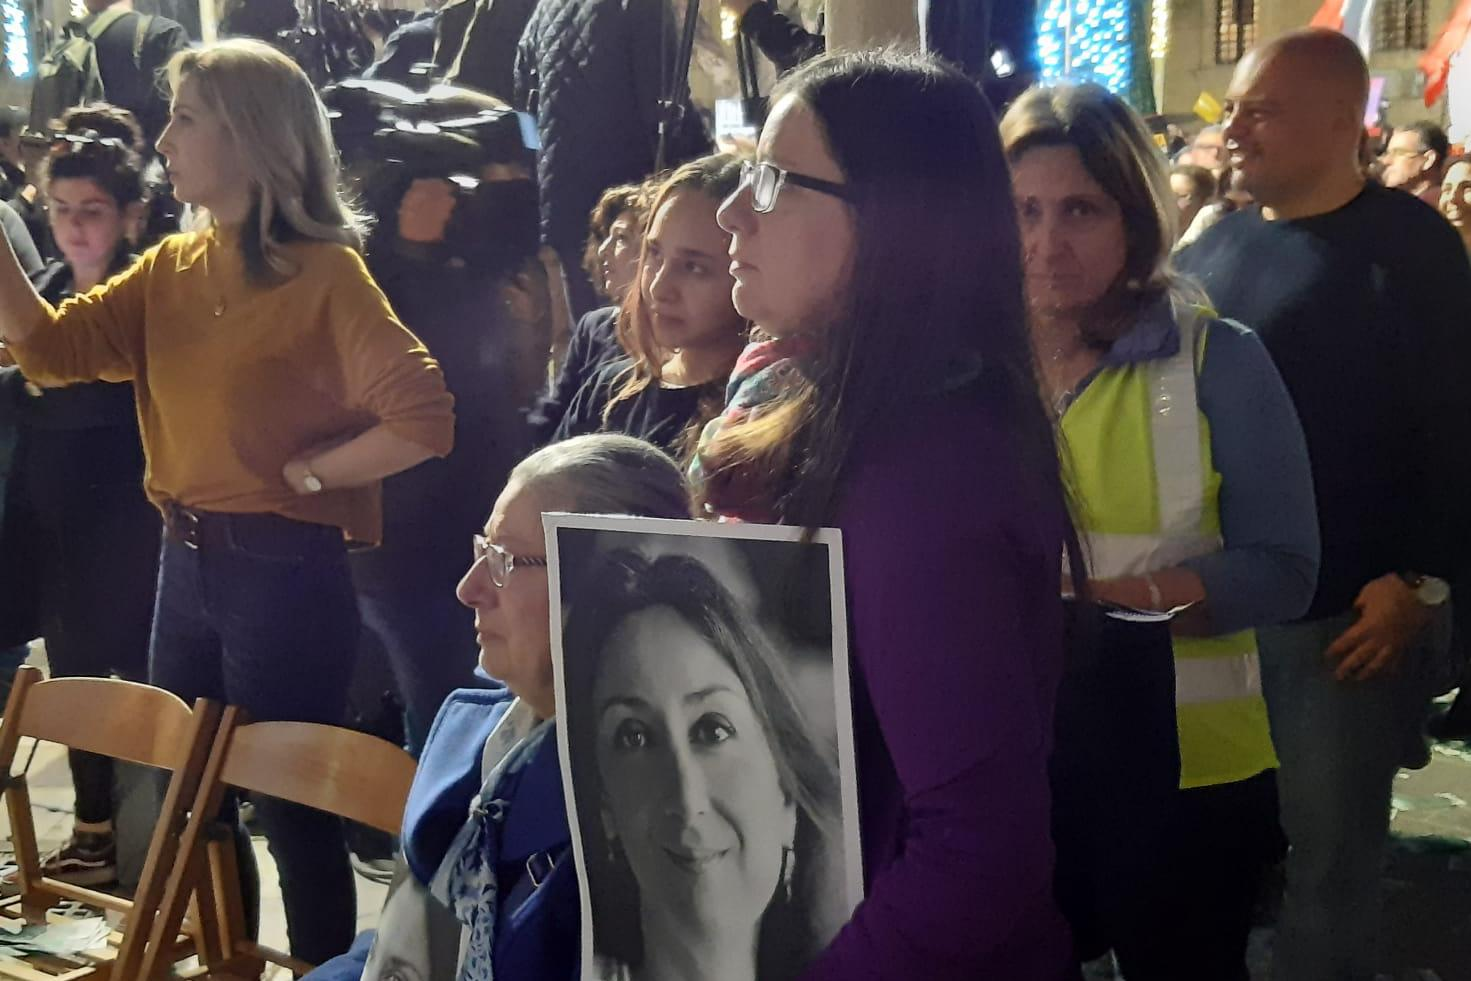 Daphne Caruana Galizia's mother and sister at the protest in Valletta on Sunday.